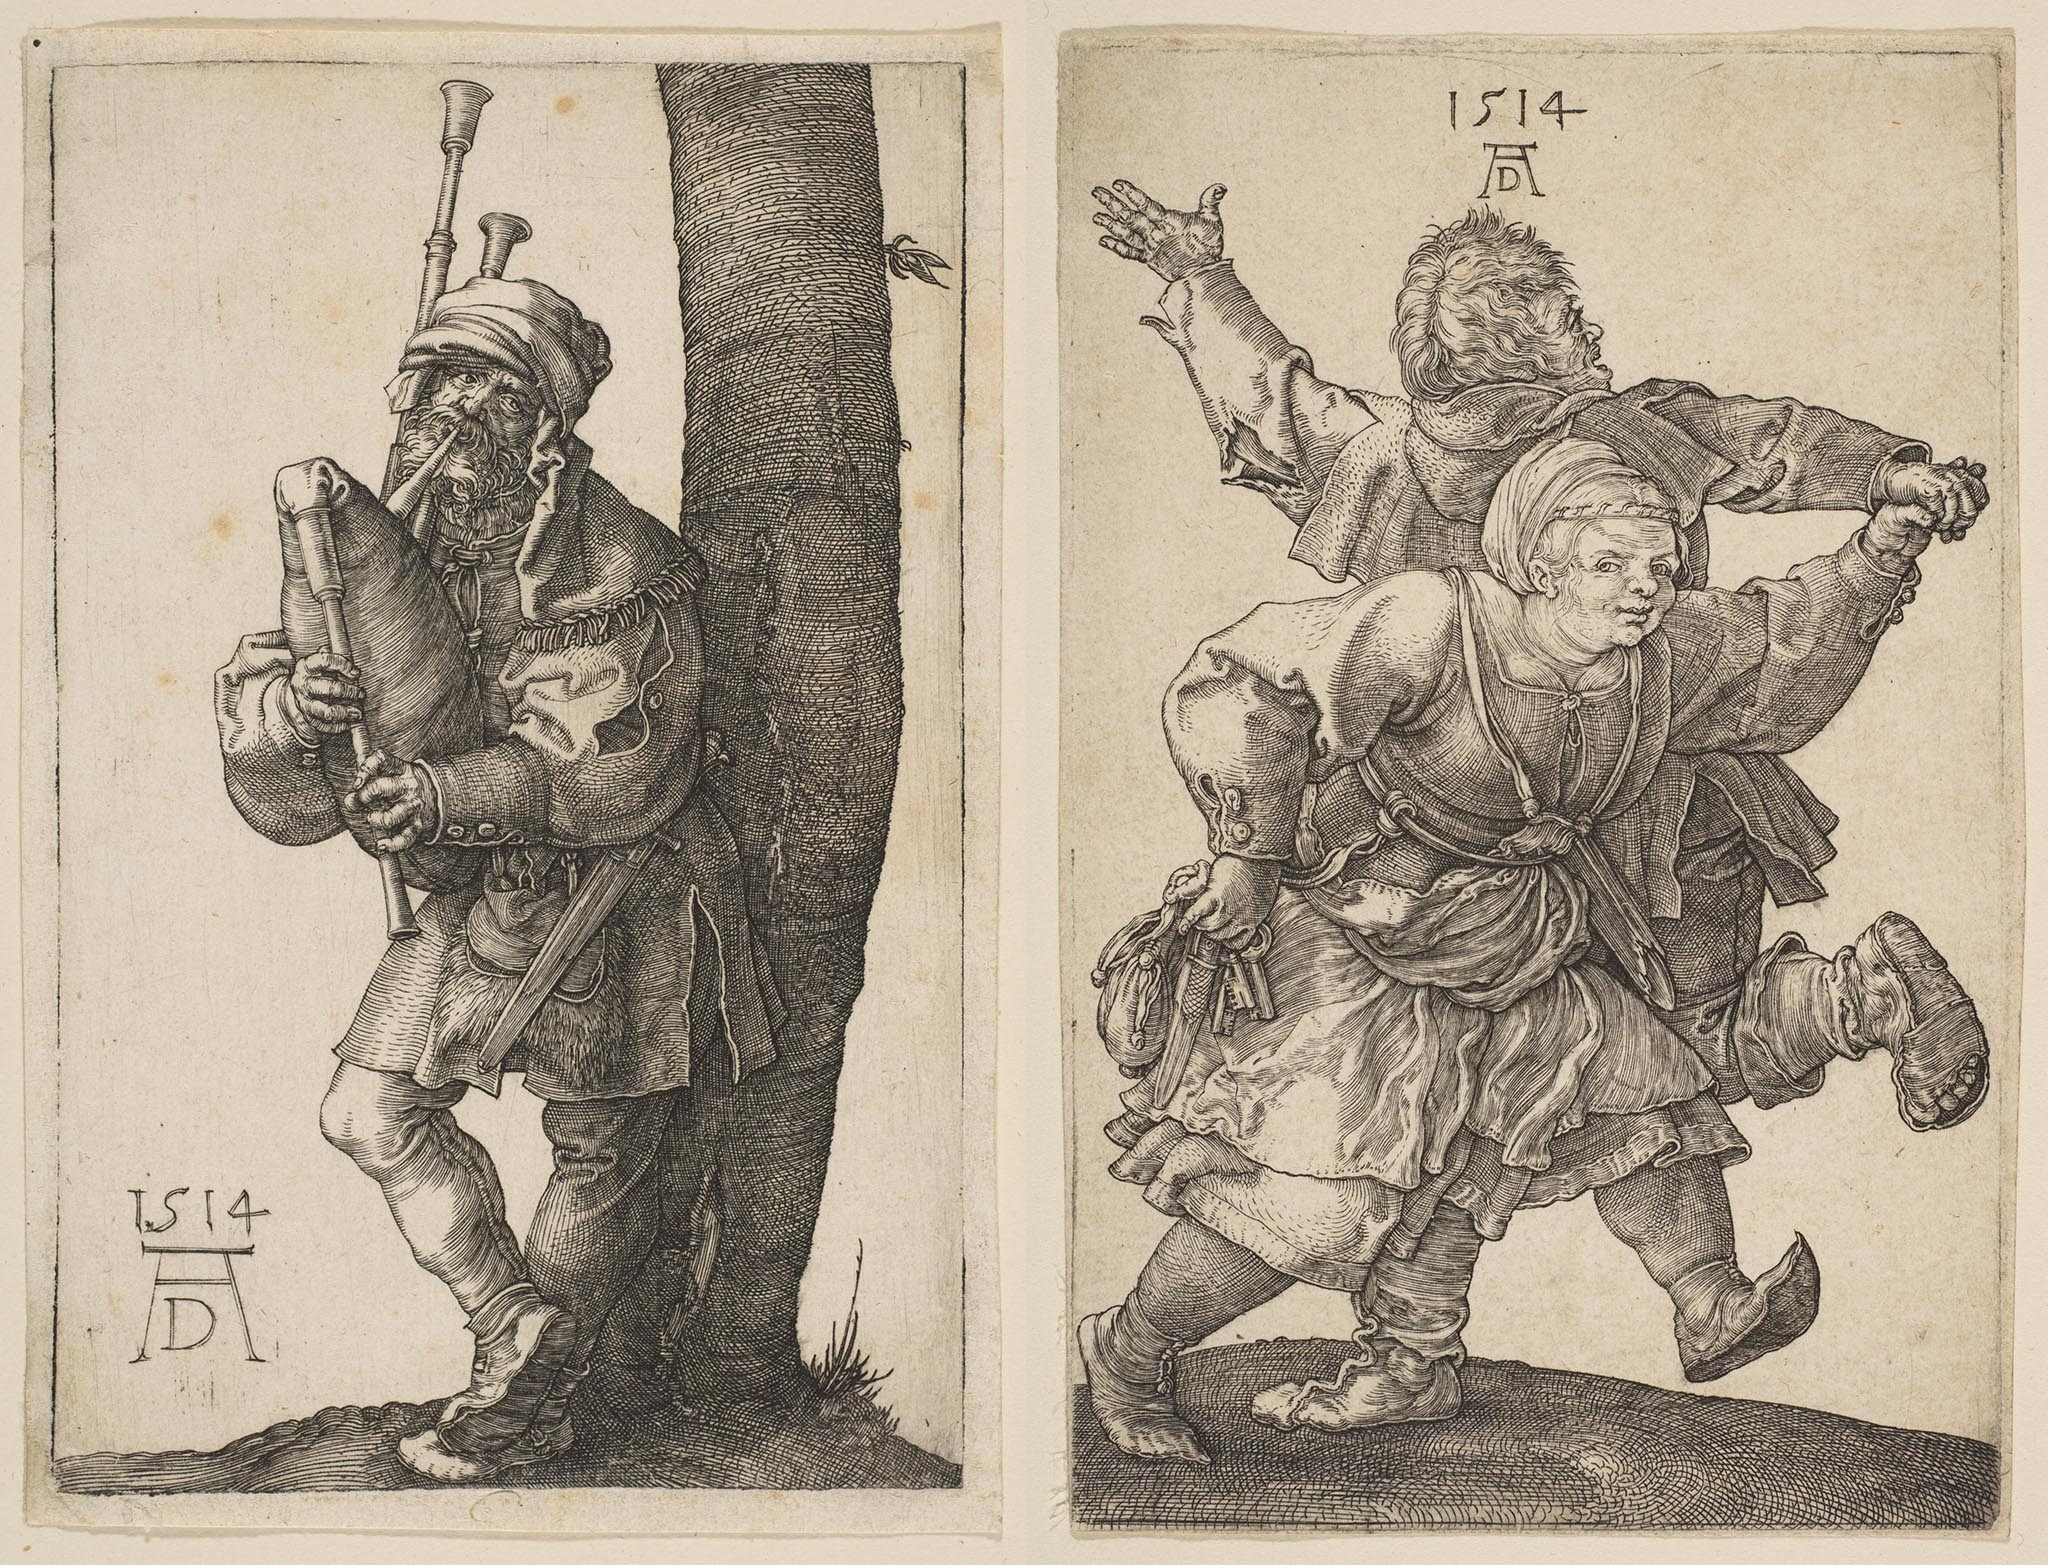 Albrecht dürers peasant engravings a different laocoön or the birth of aesthetic subversion in the spirit of the reformation